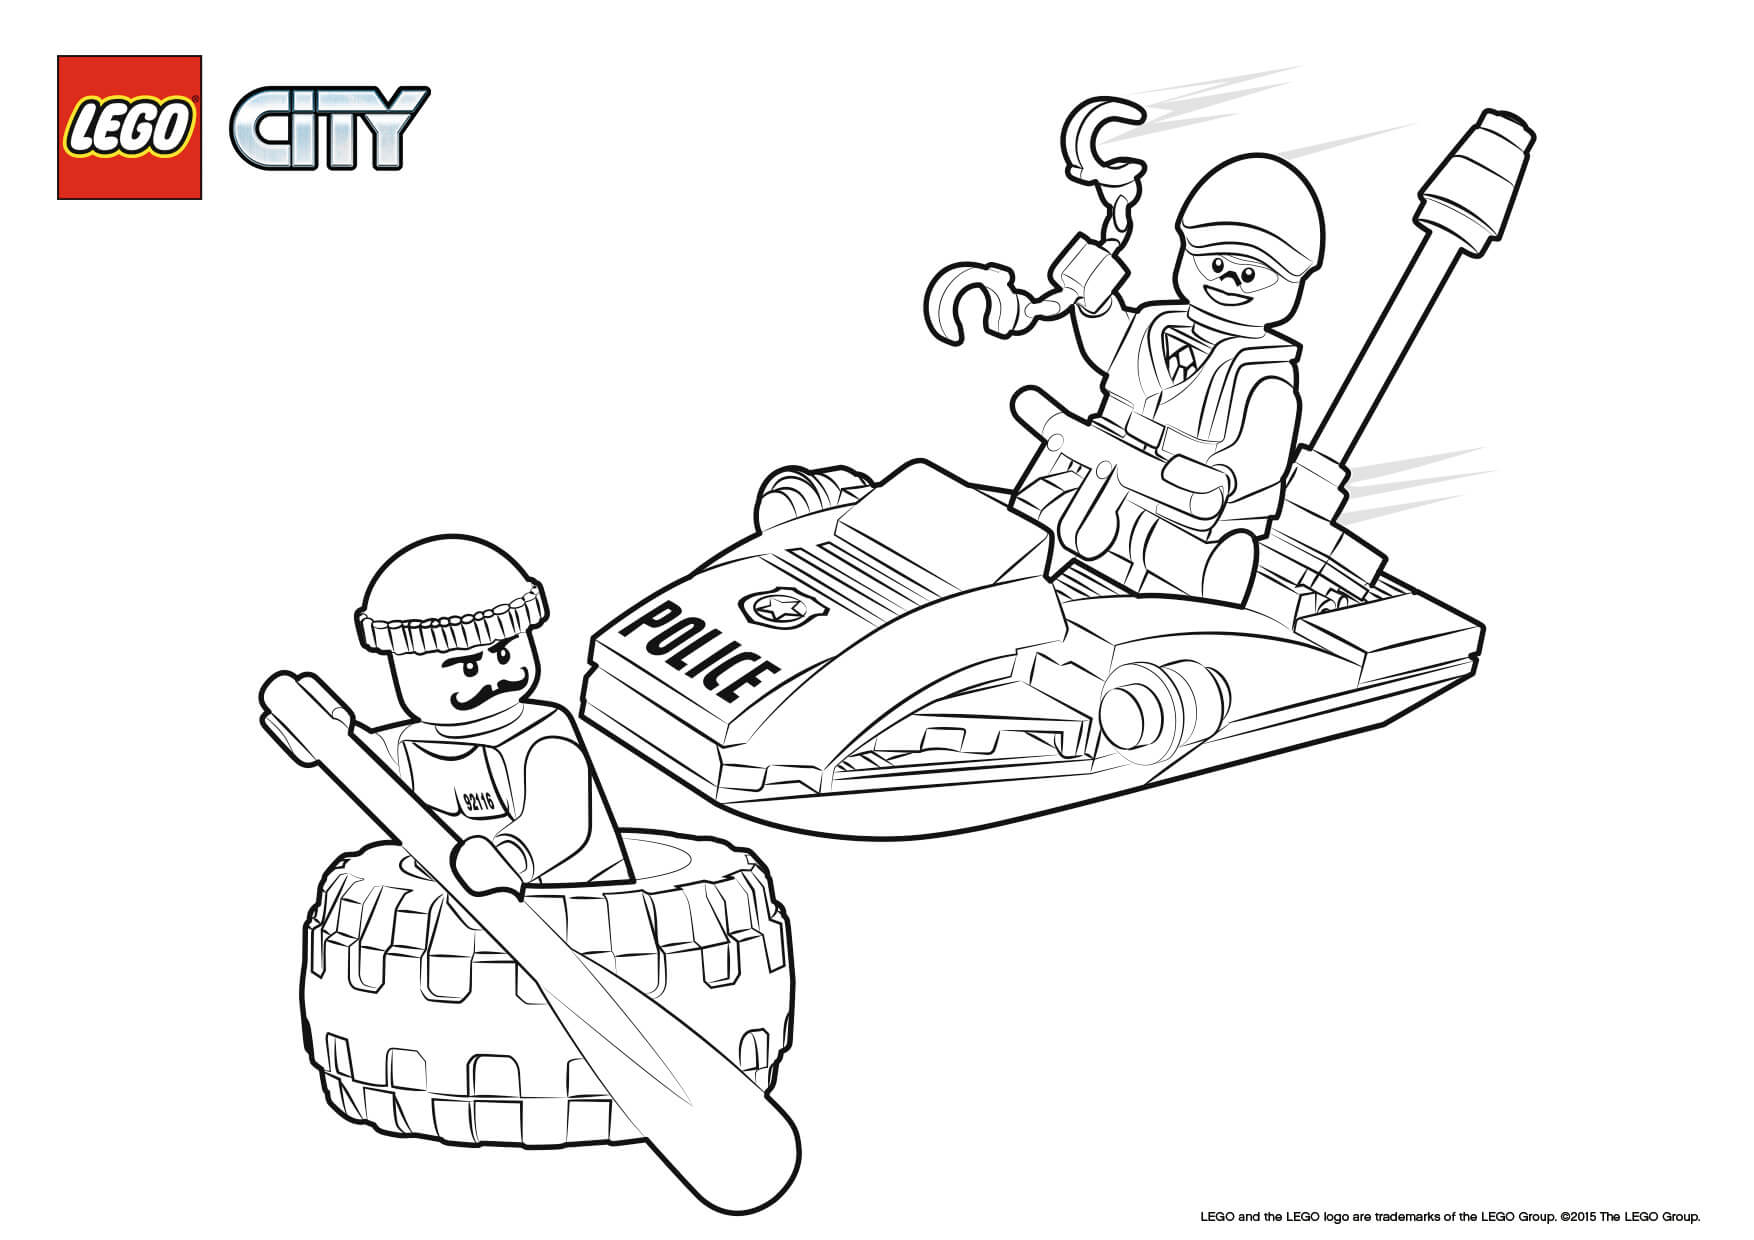 Lego City Marine Police Coloring Pages